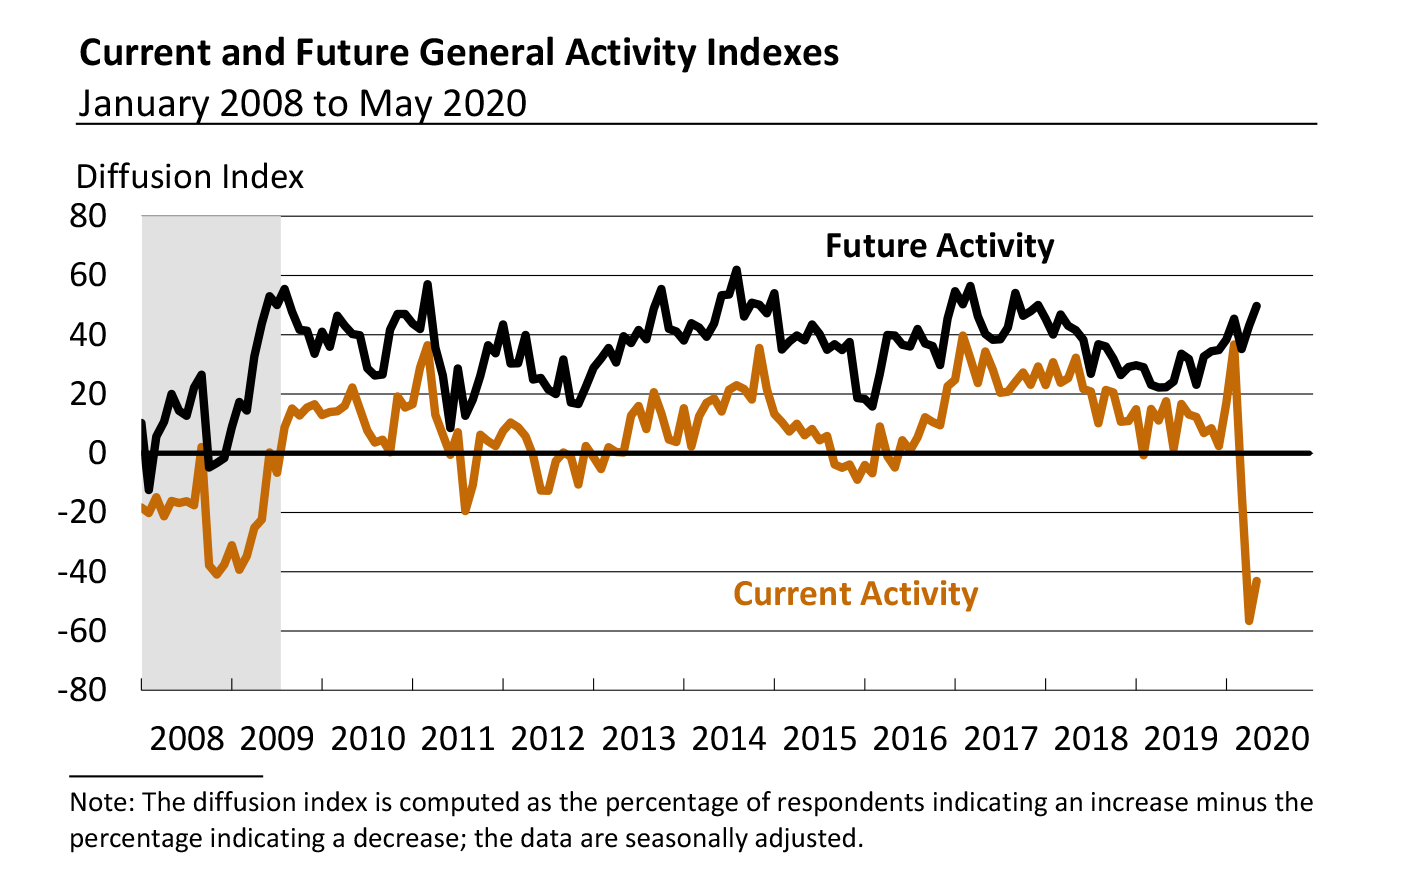 Line chart showing Current and Future General Activity Indexes - January 2008 to May 2020